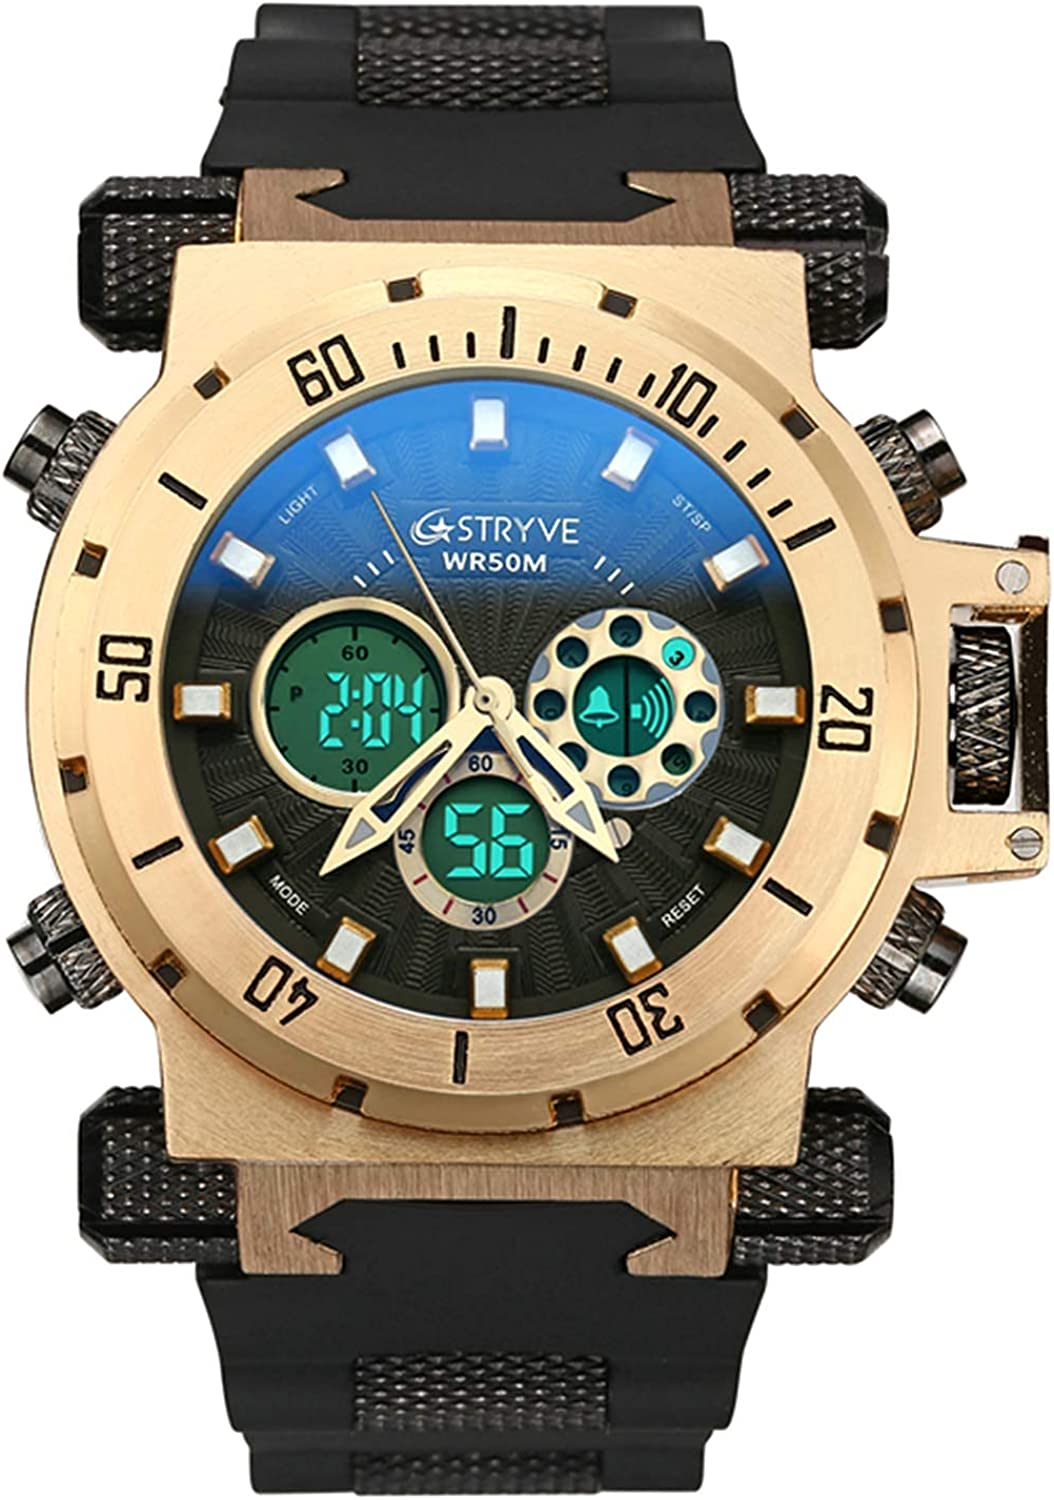 Miami Mall STRYVE Max 41% OFF Men's Wrist Watches Waterproof Digital-Analog 5ATM Sports